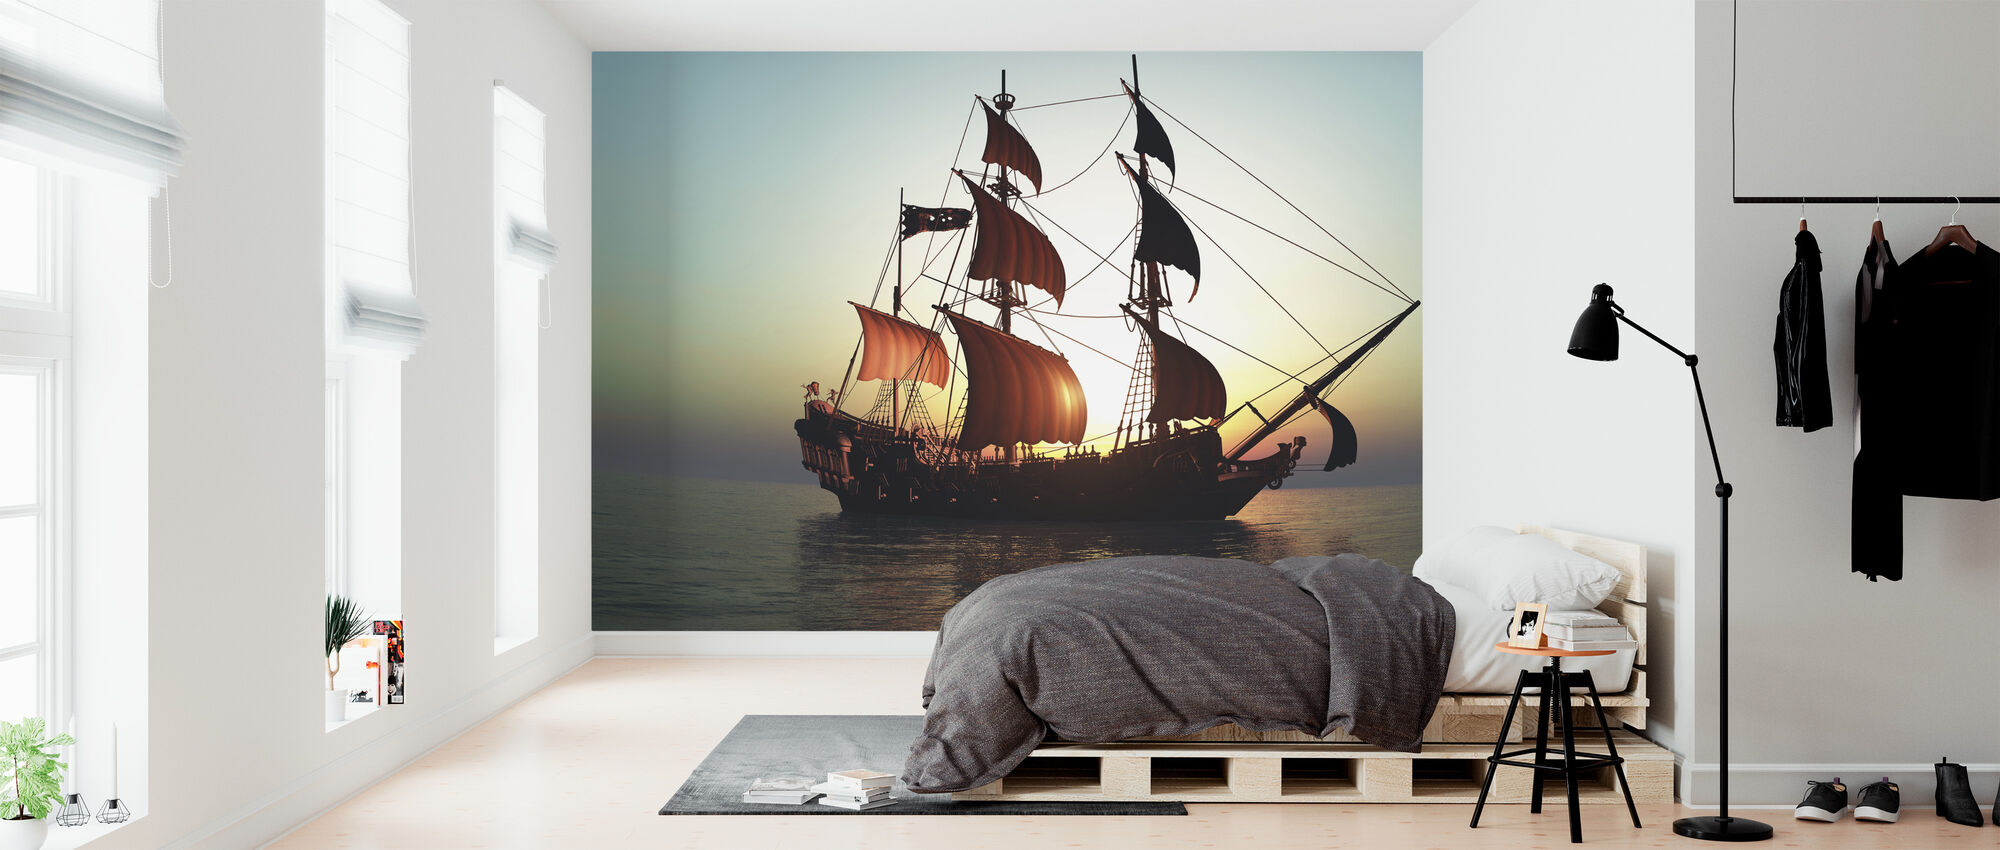 Pacific Sailing Ship - Wallpaper - Bedroom